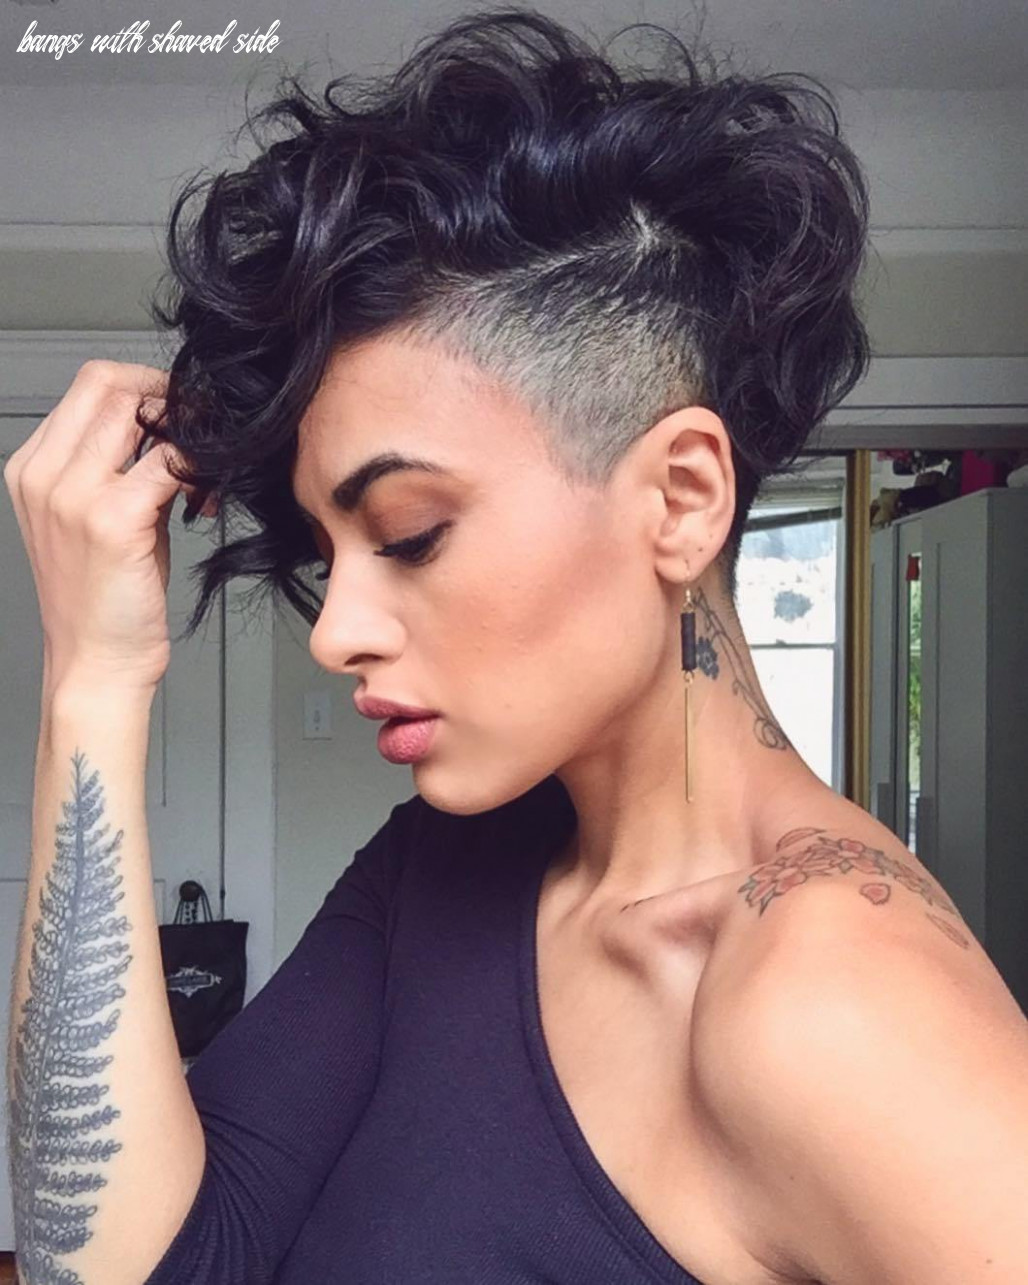 12 Bold Shaved Hairstyles for Women | Shaved Hair Designs